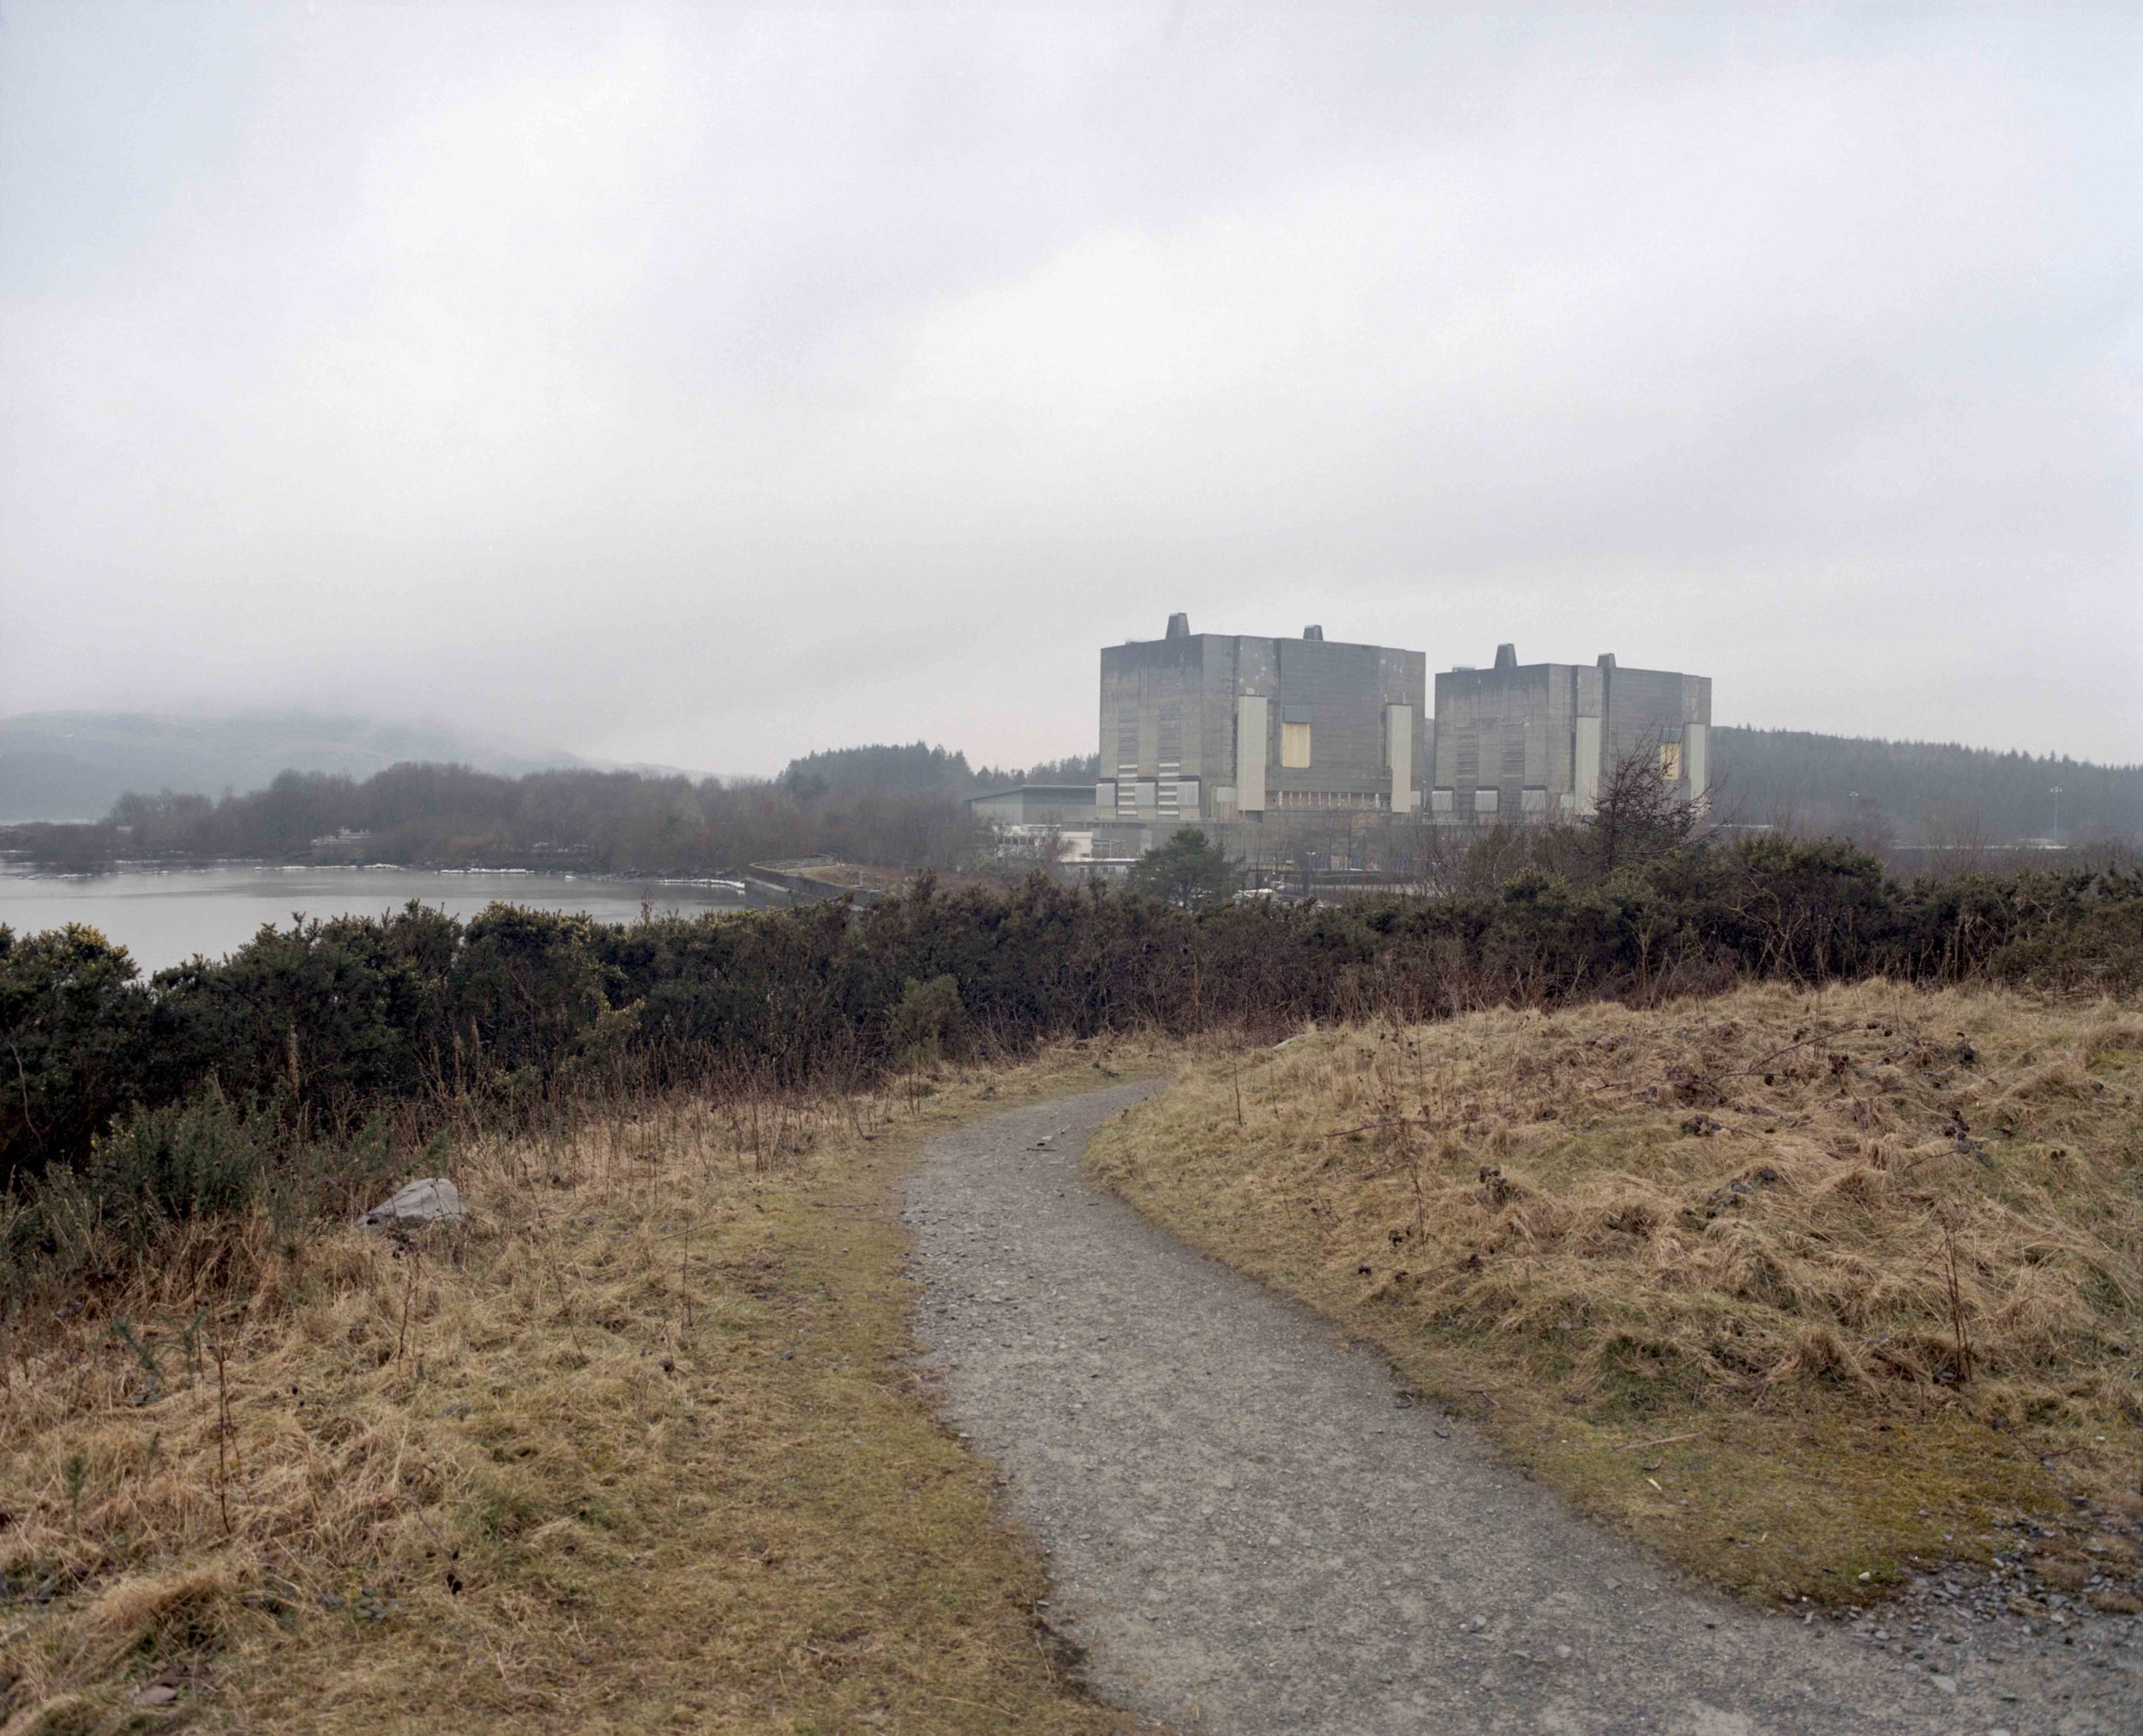 Trawsfynydd Nuclear Power Station - Closed in 1991, the nuclear power station is expected to take 100 years to complete its decommission.